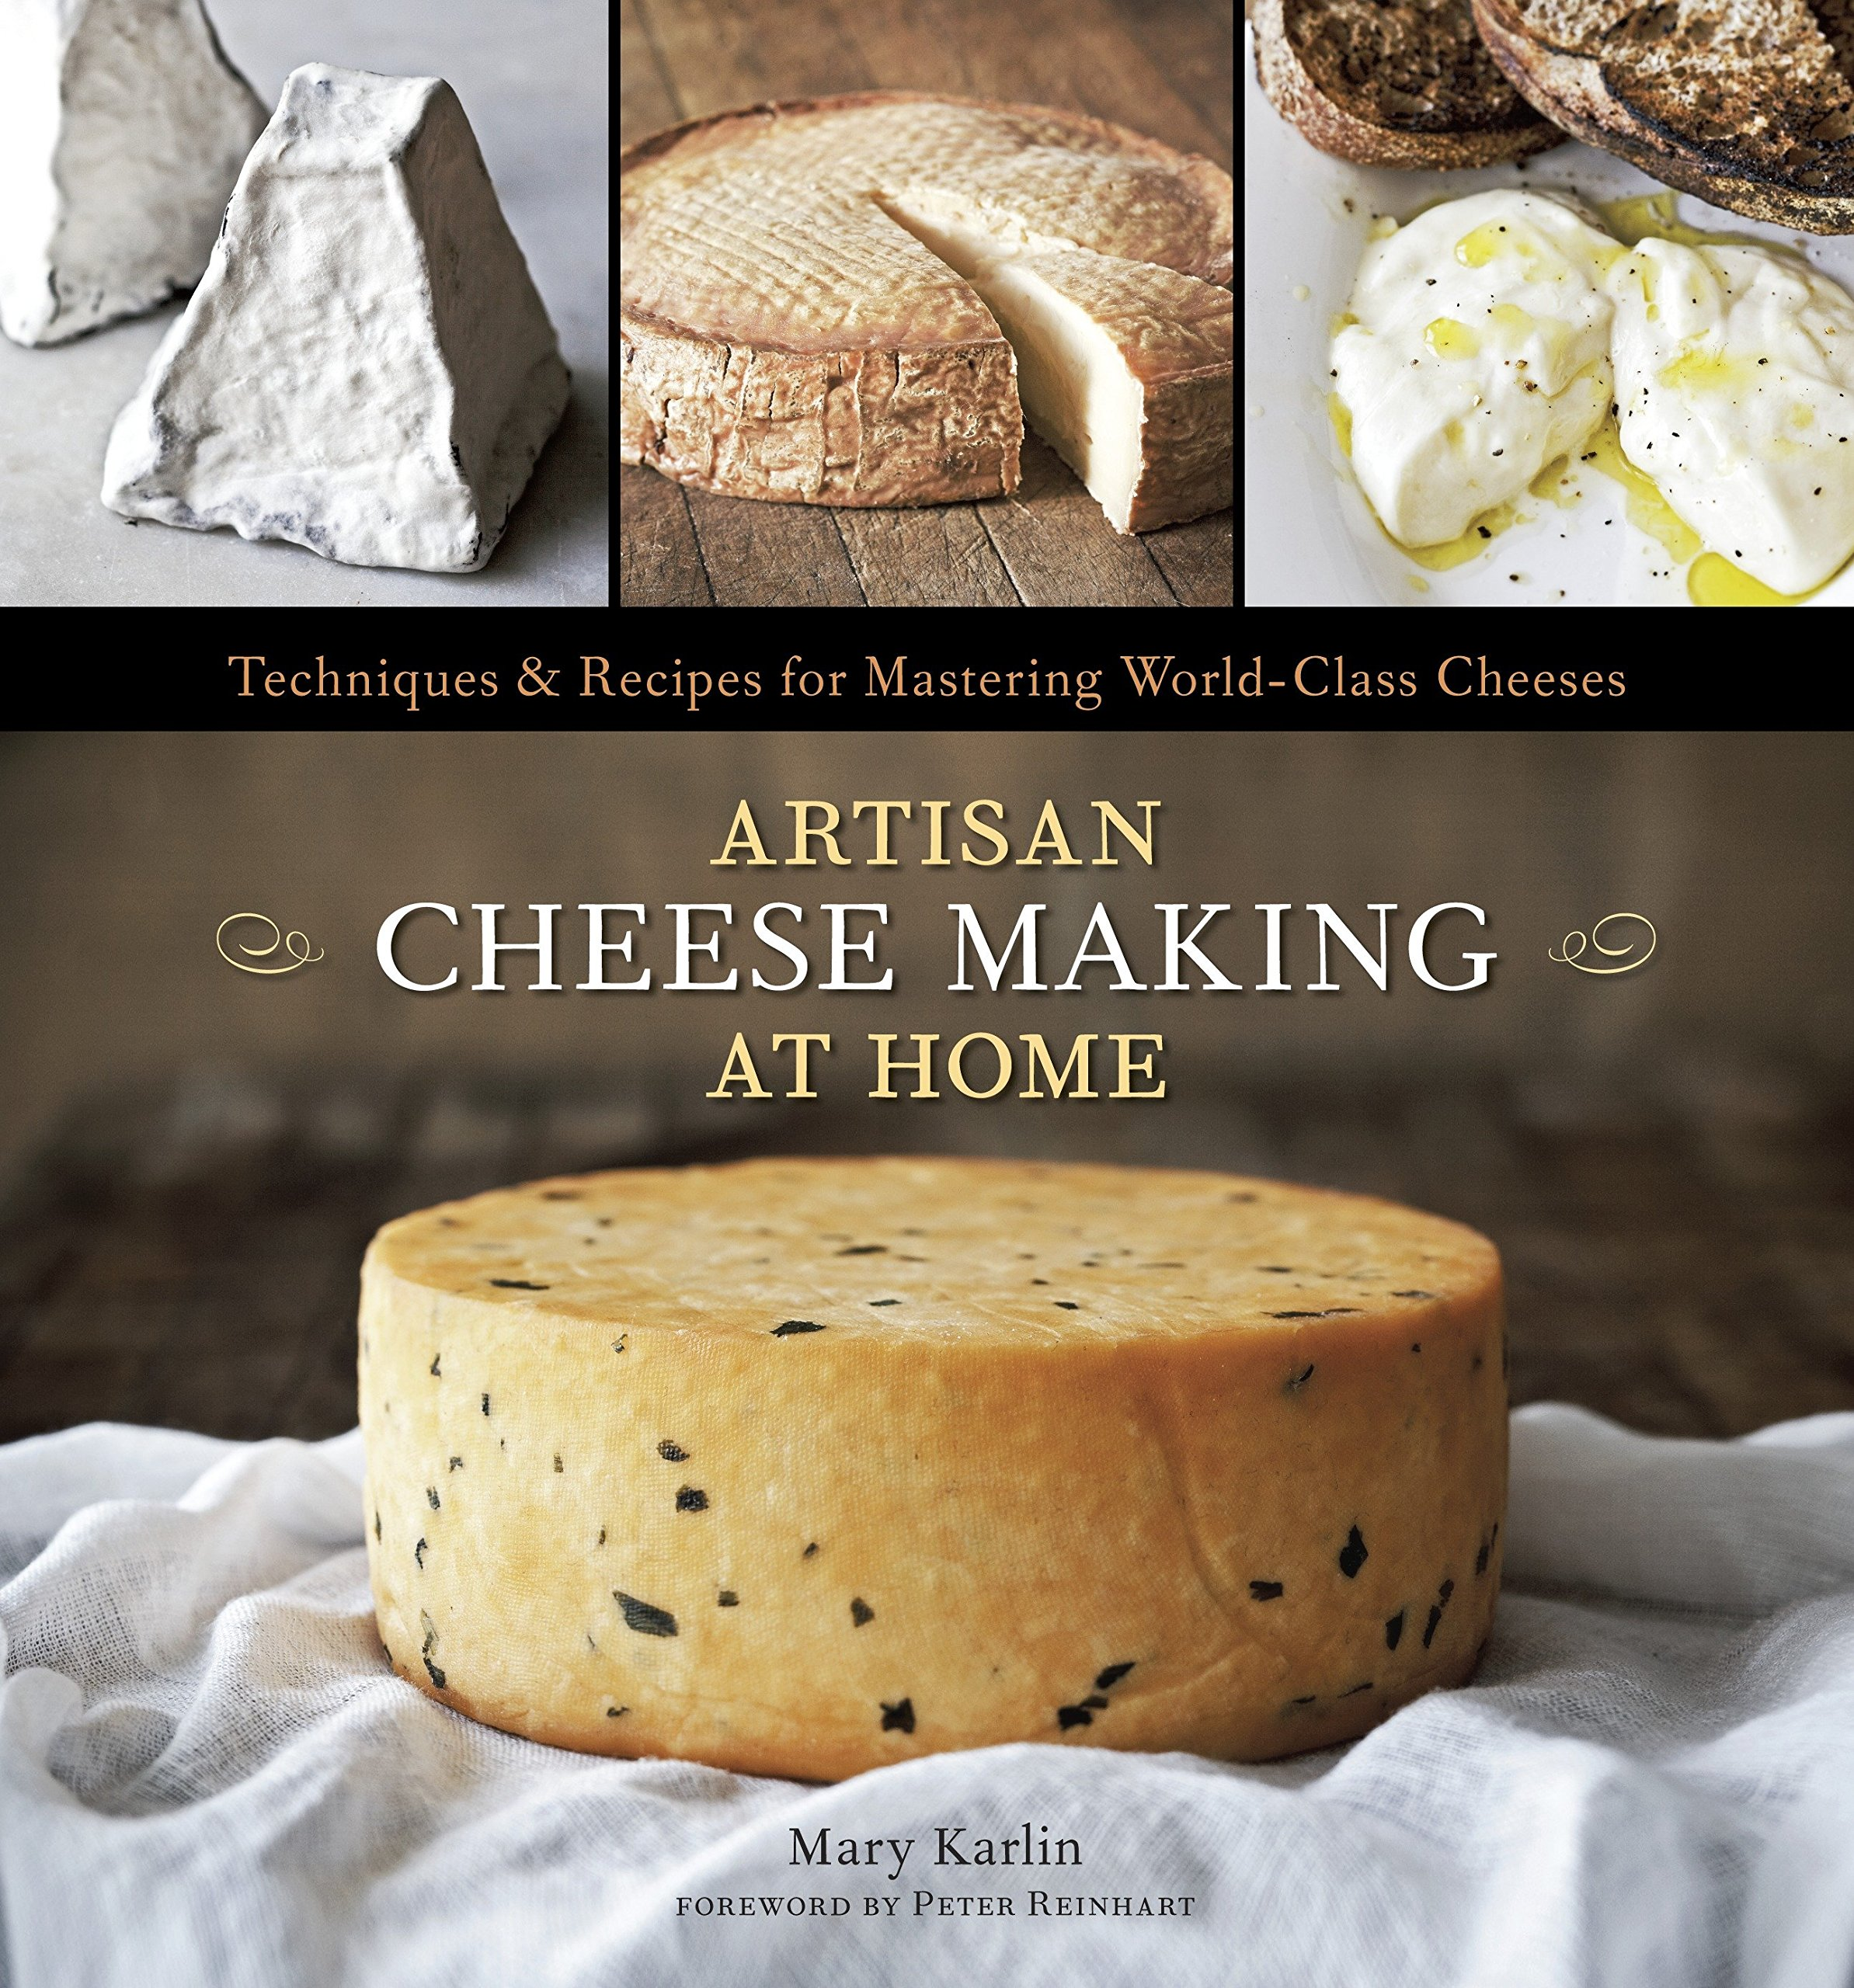 HOME CHEESE MAKING PDF DOWNLOAD